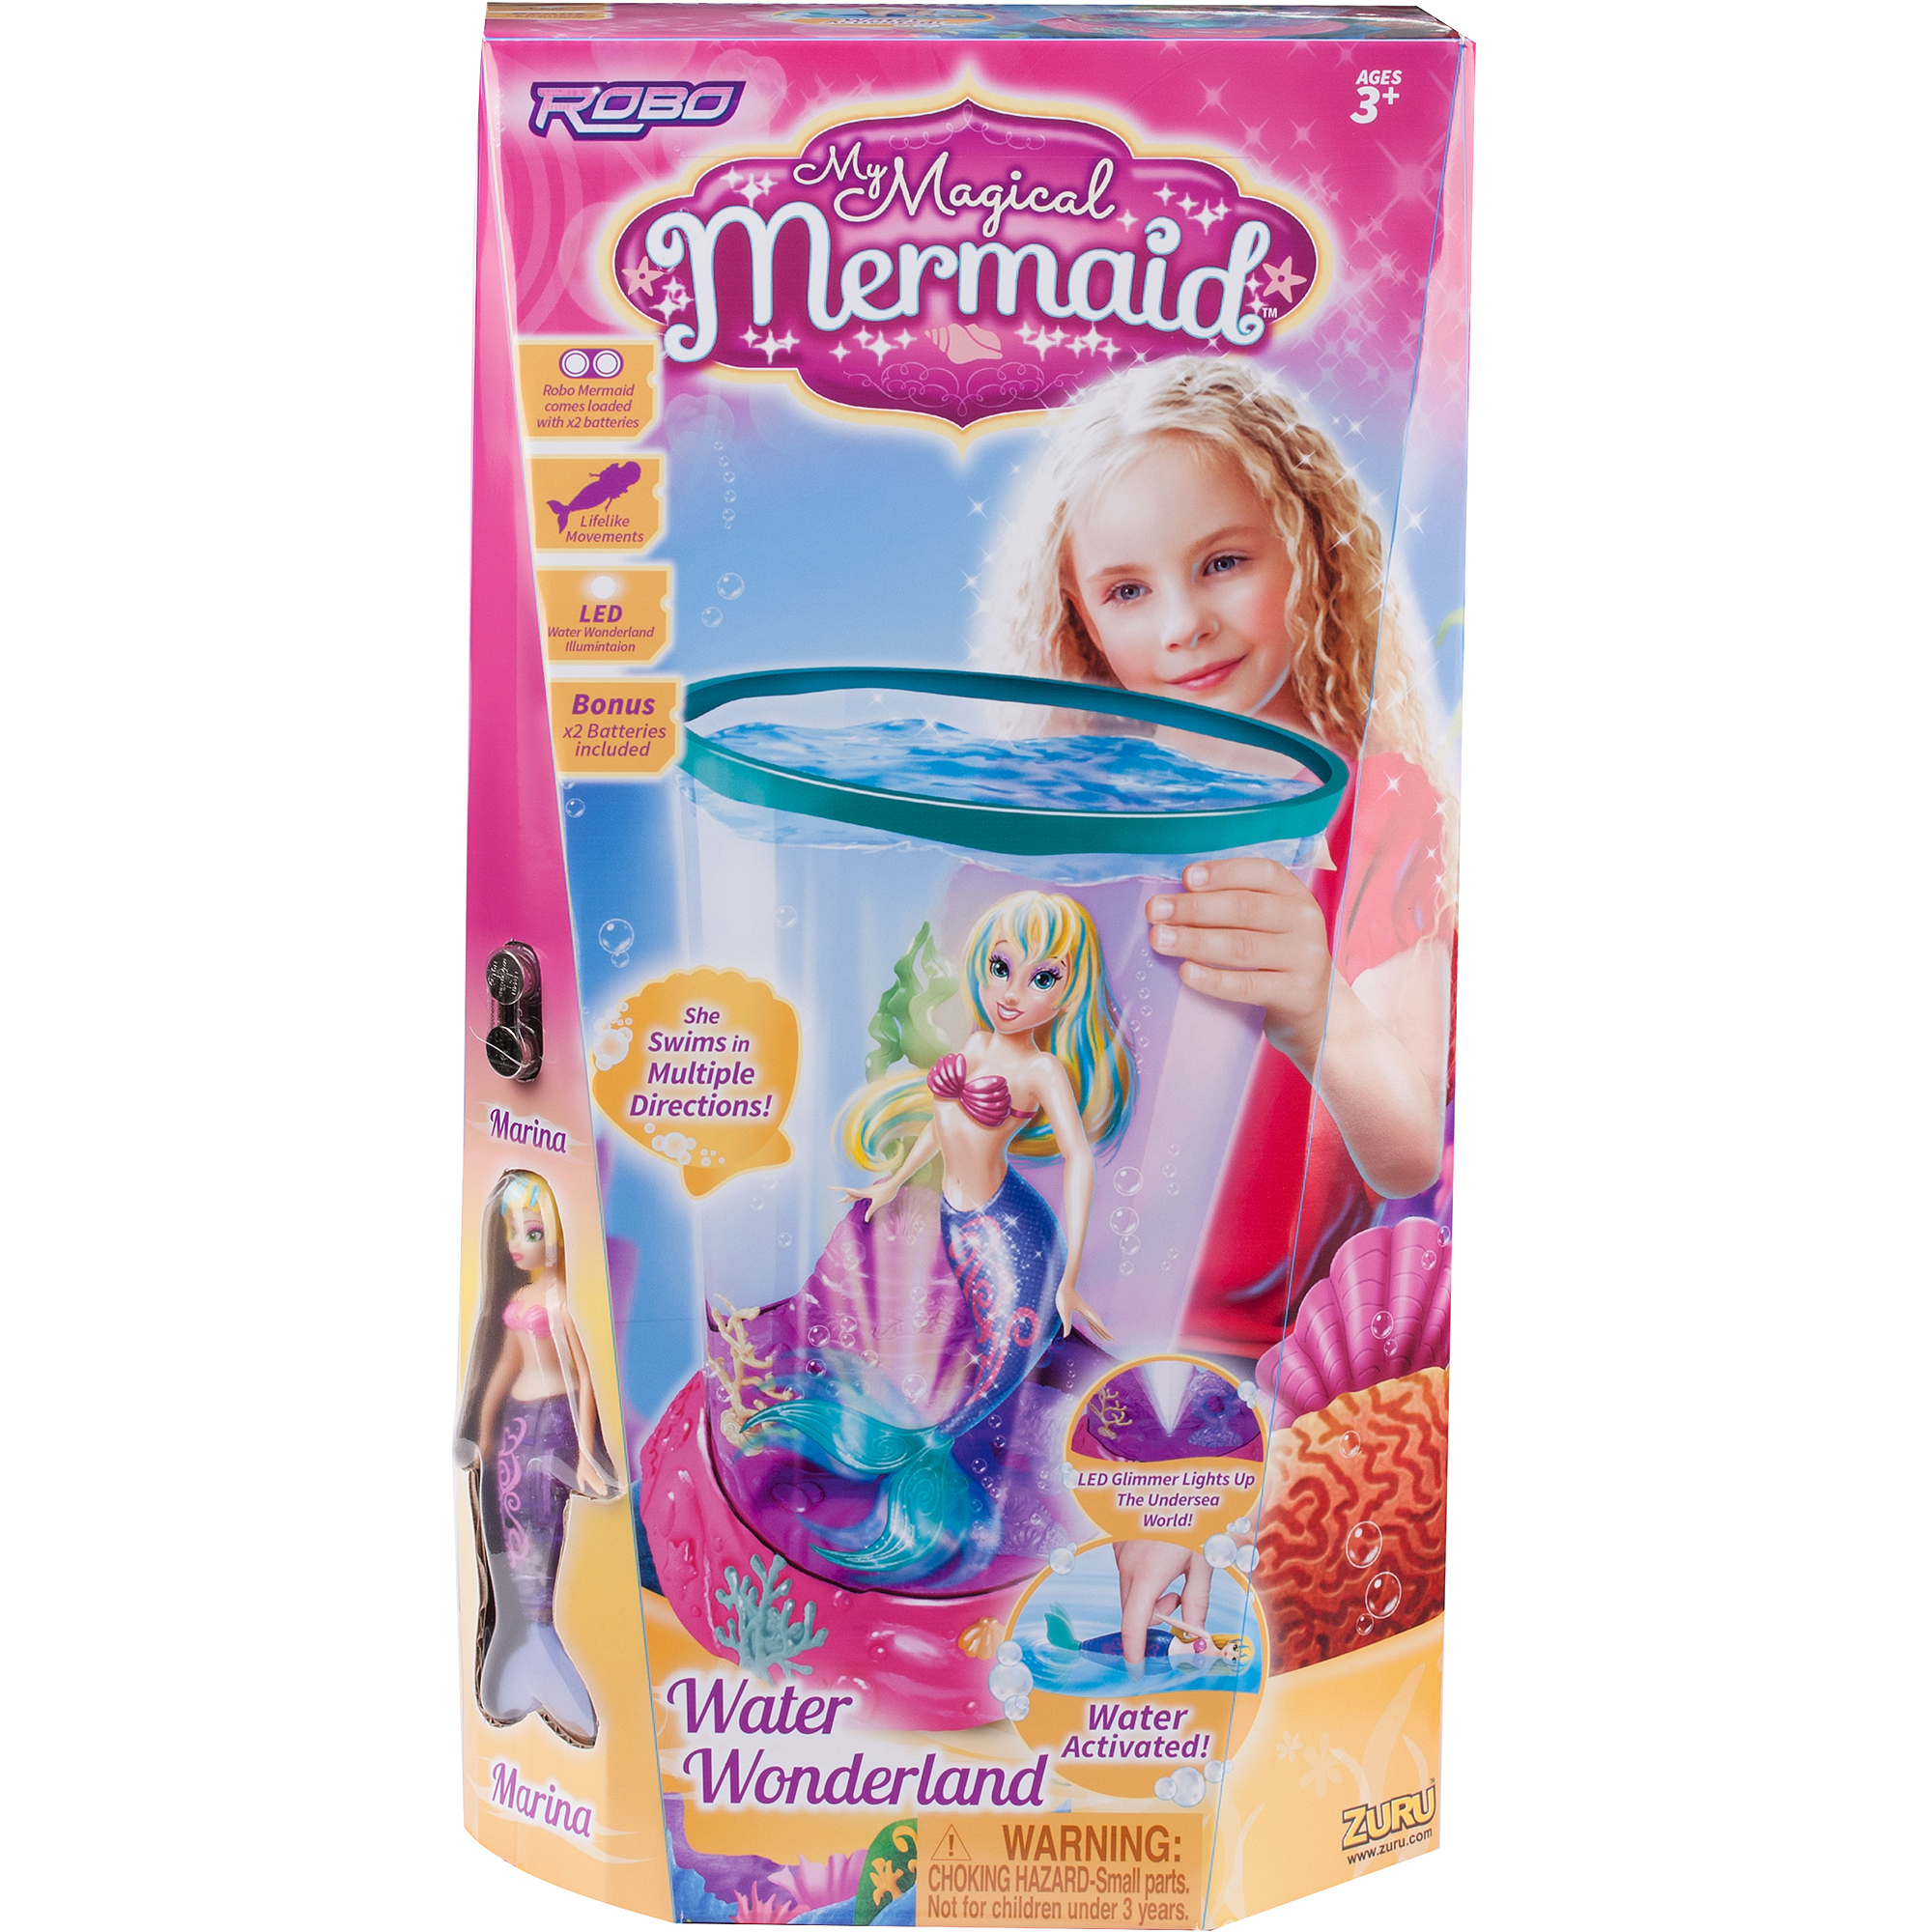 Magical Mermaid Playset Walmartcom